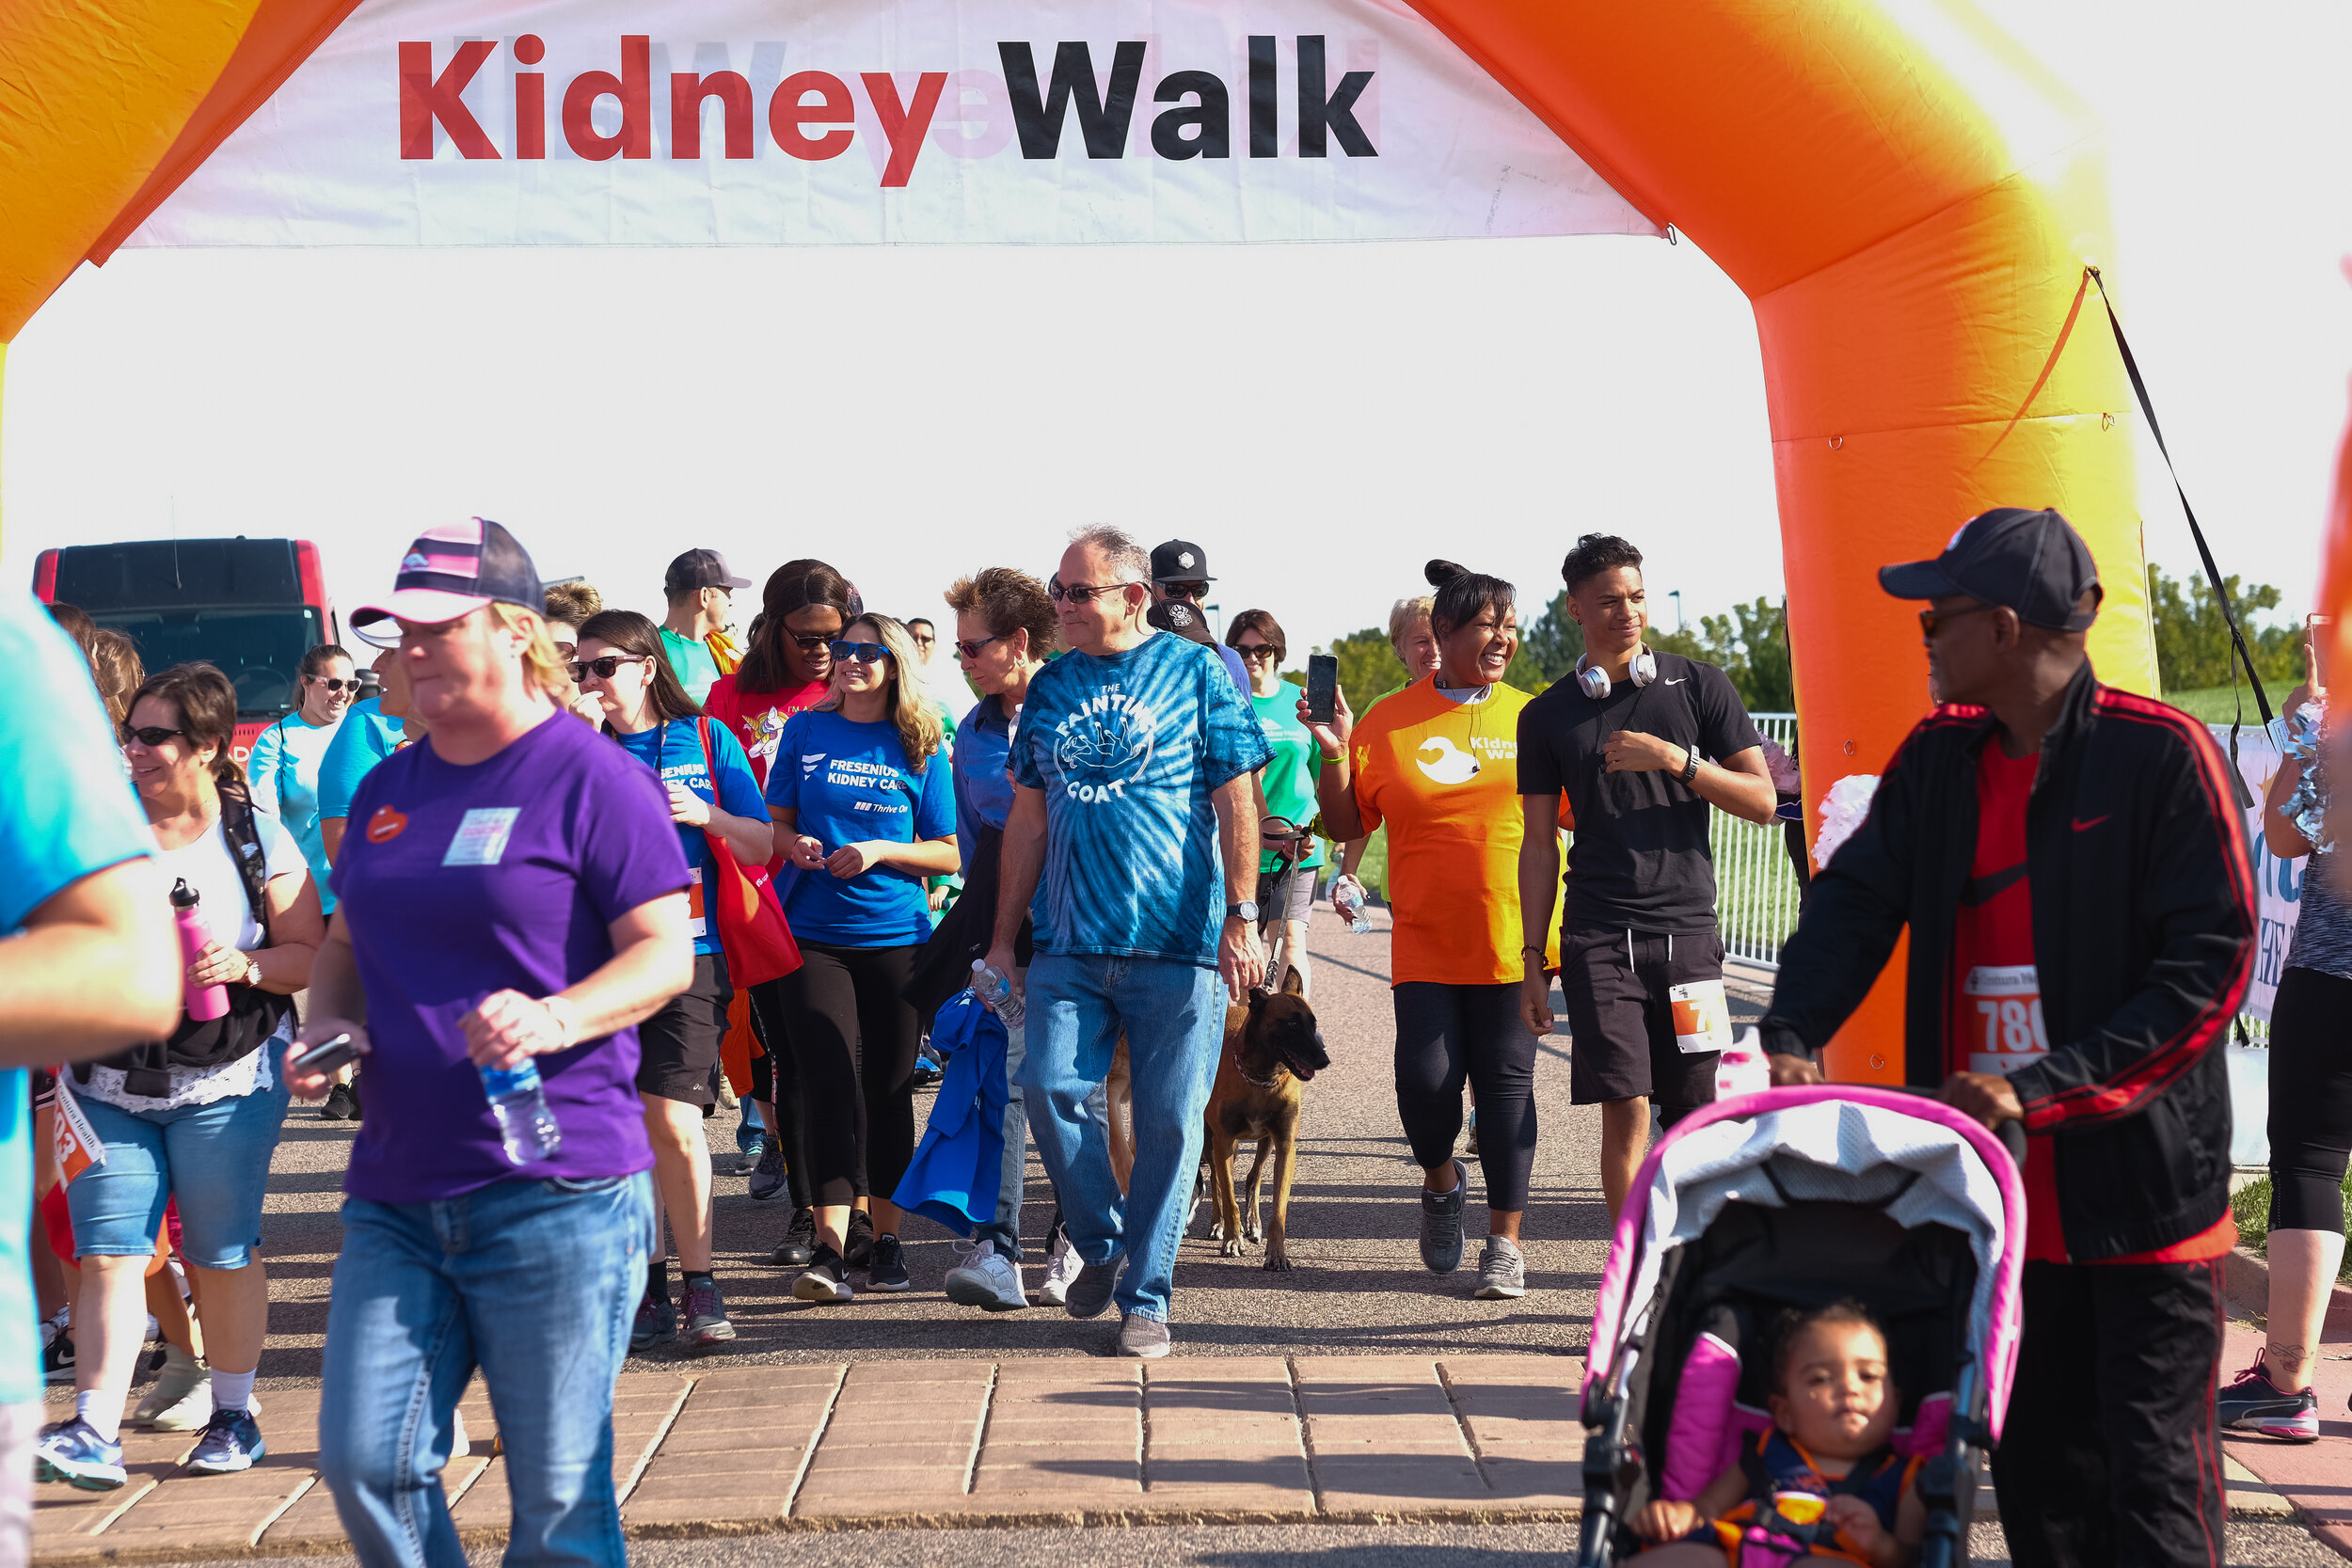 Denver Kidney Walk-138.jpg